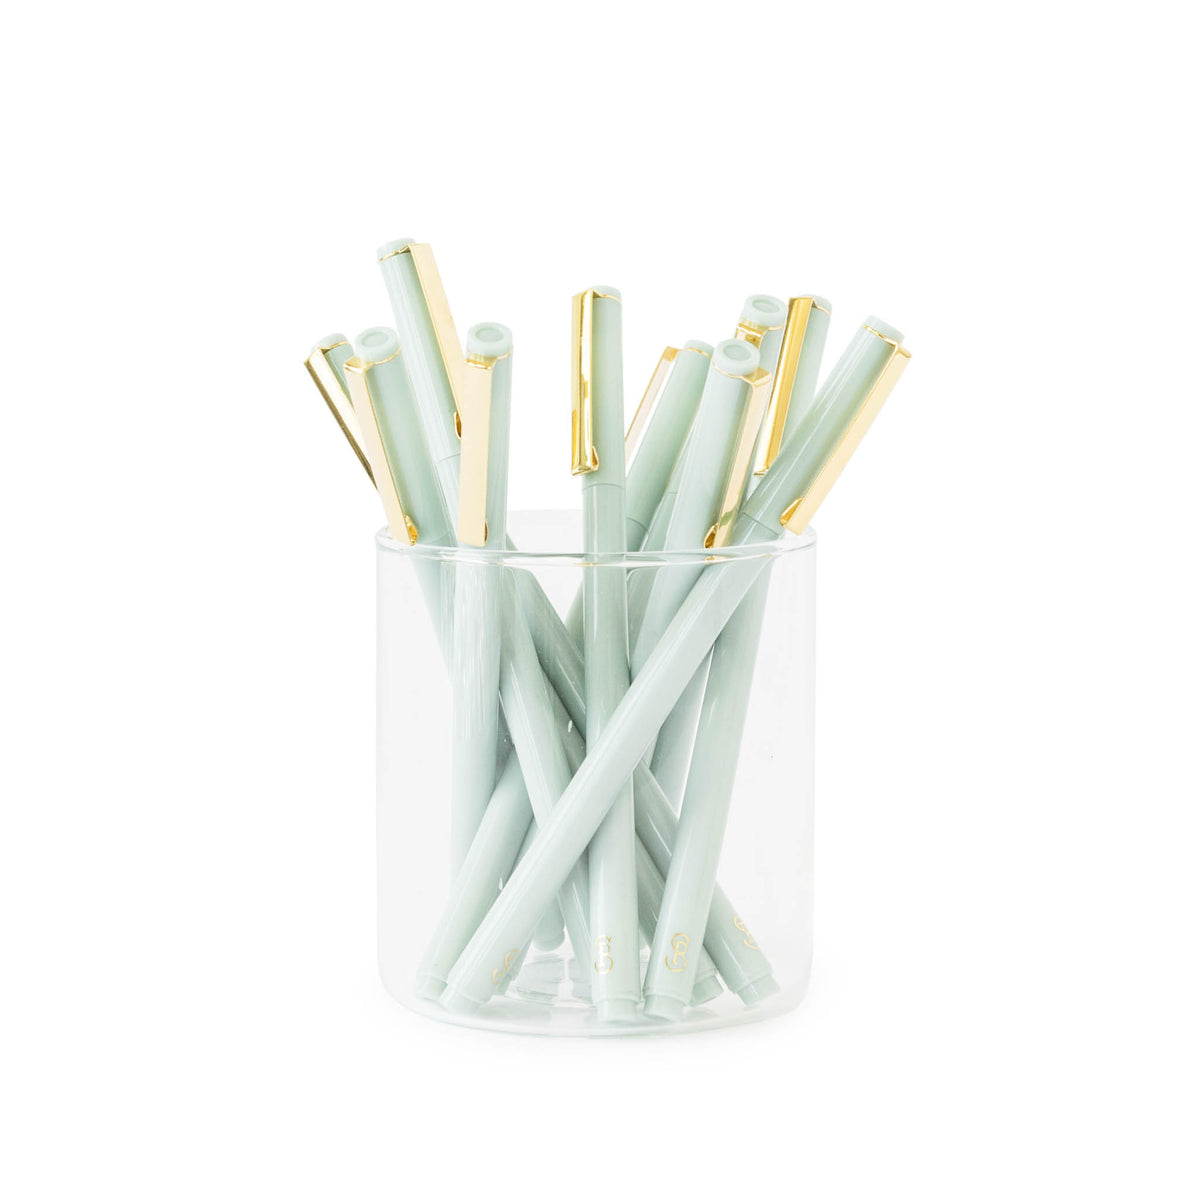 Mint Green and Gold Cap Felt Tip Pens in Glass Jar